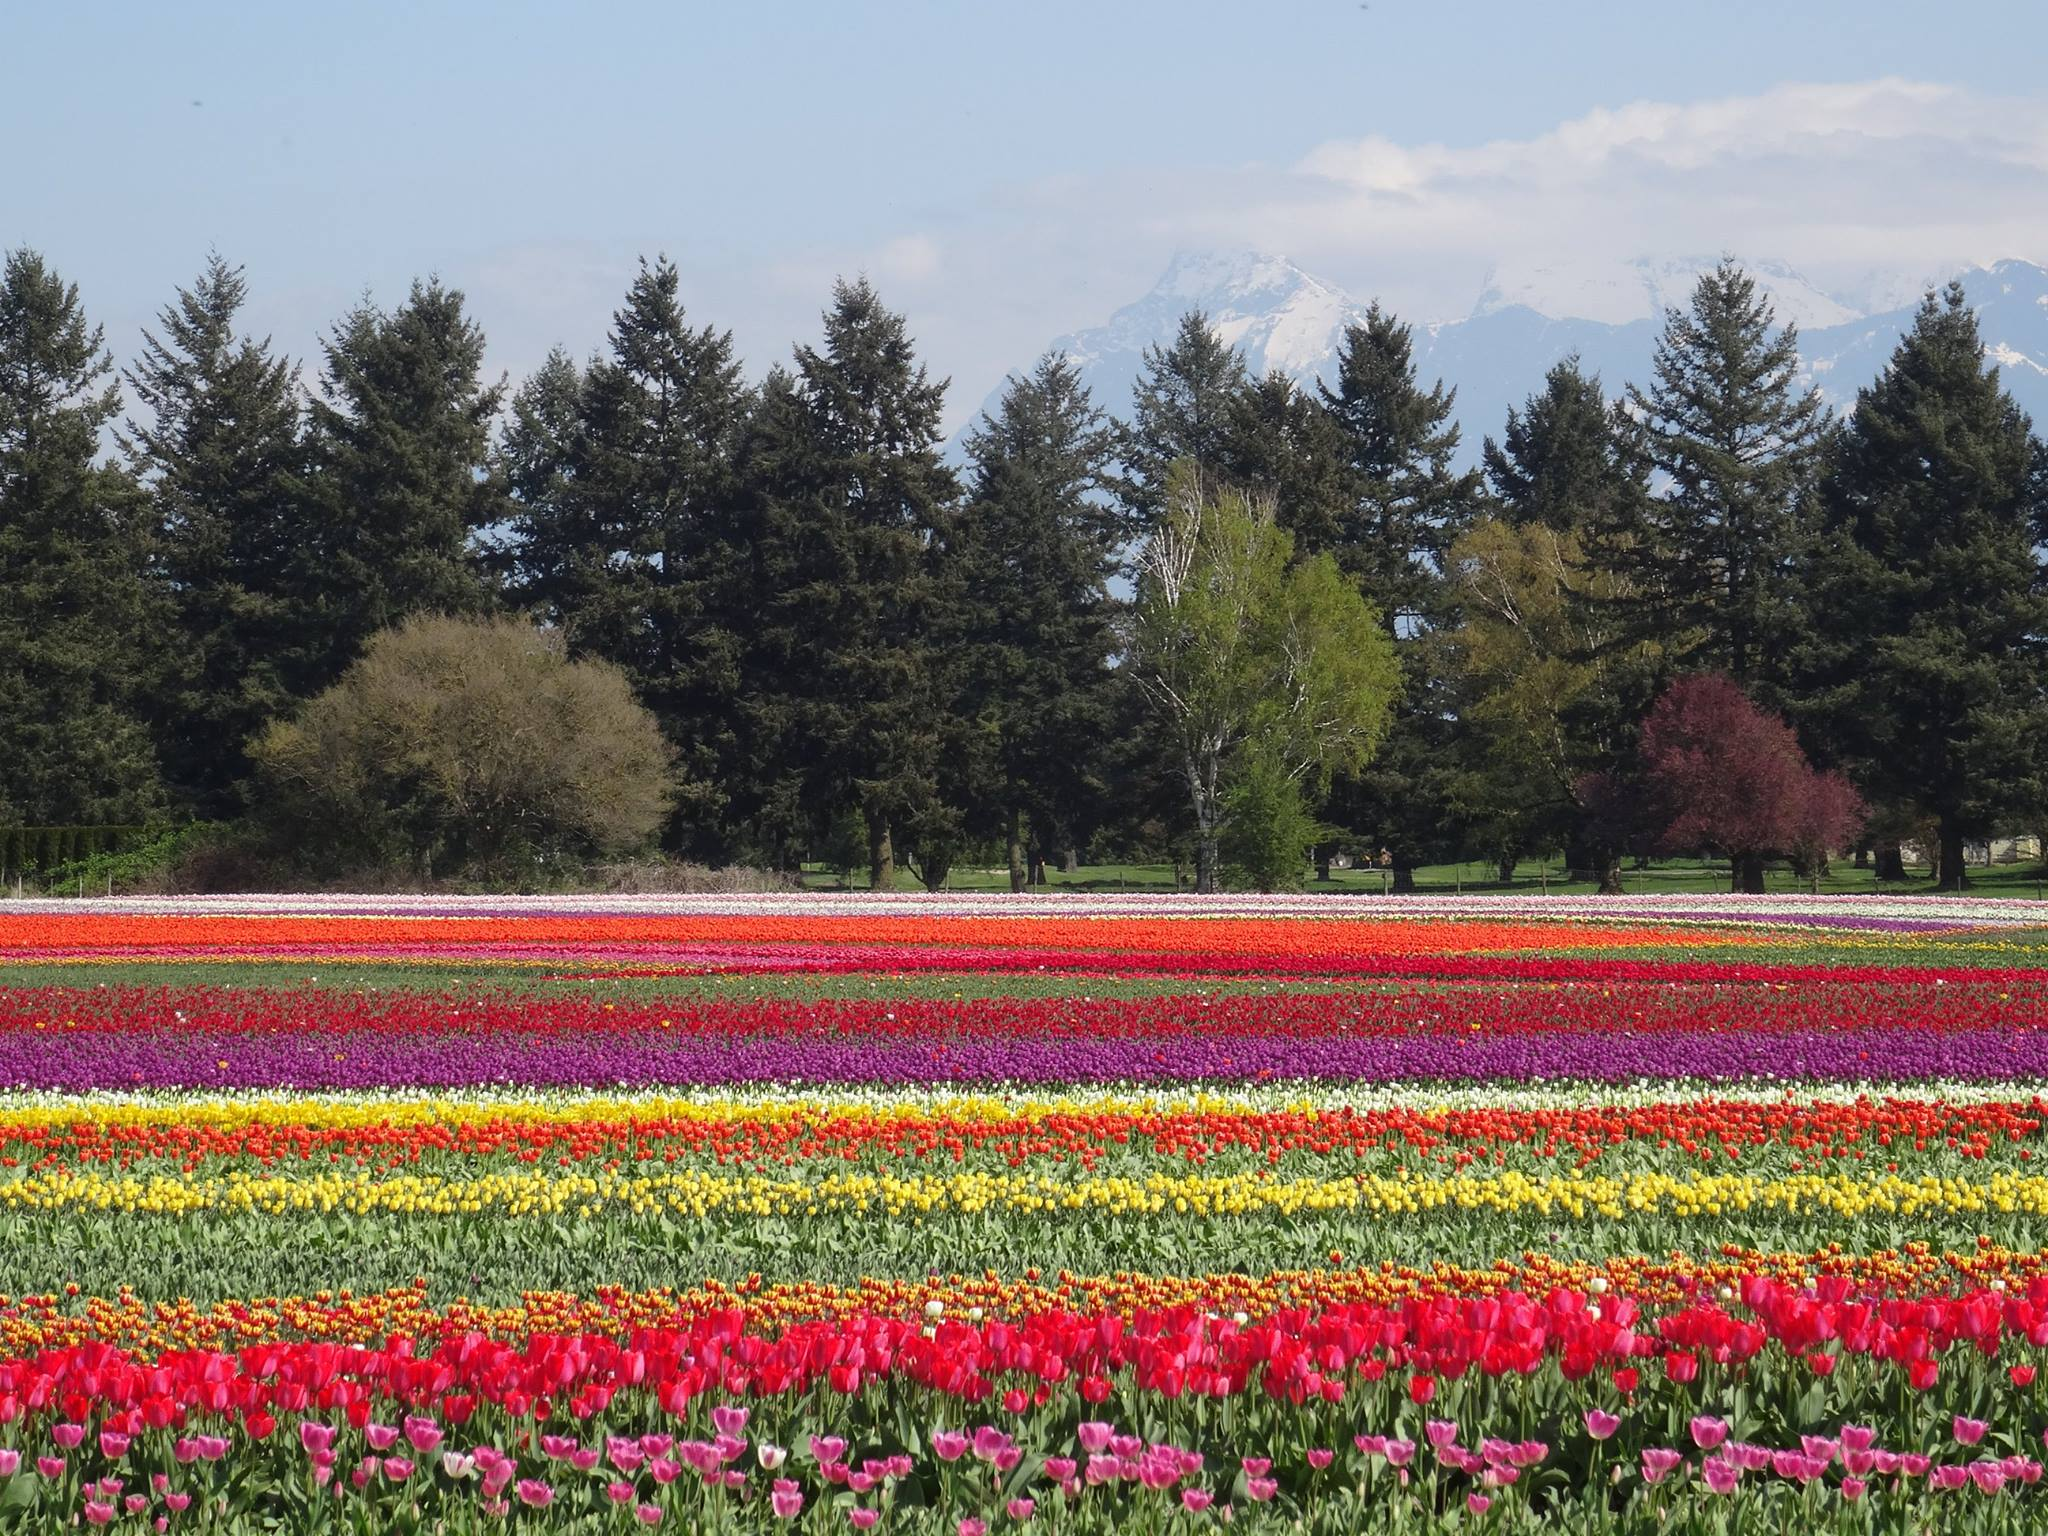 Fraser Valley Tulips - Anne Vanderhiede